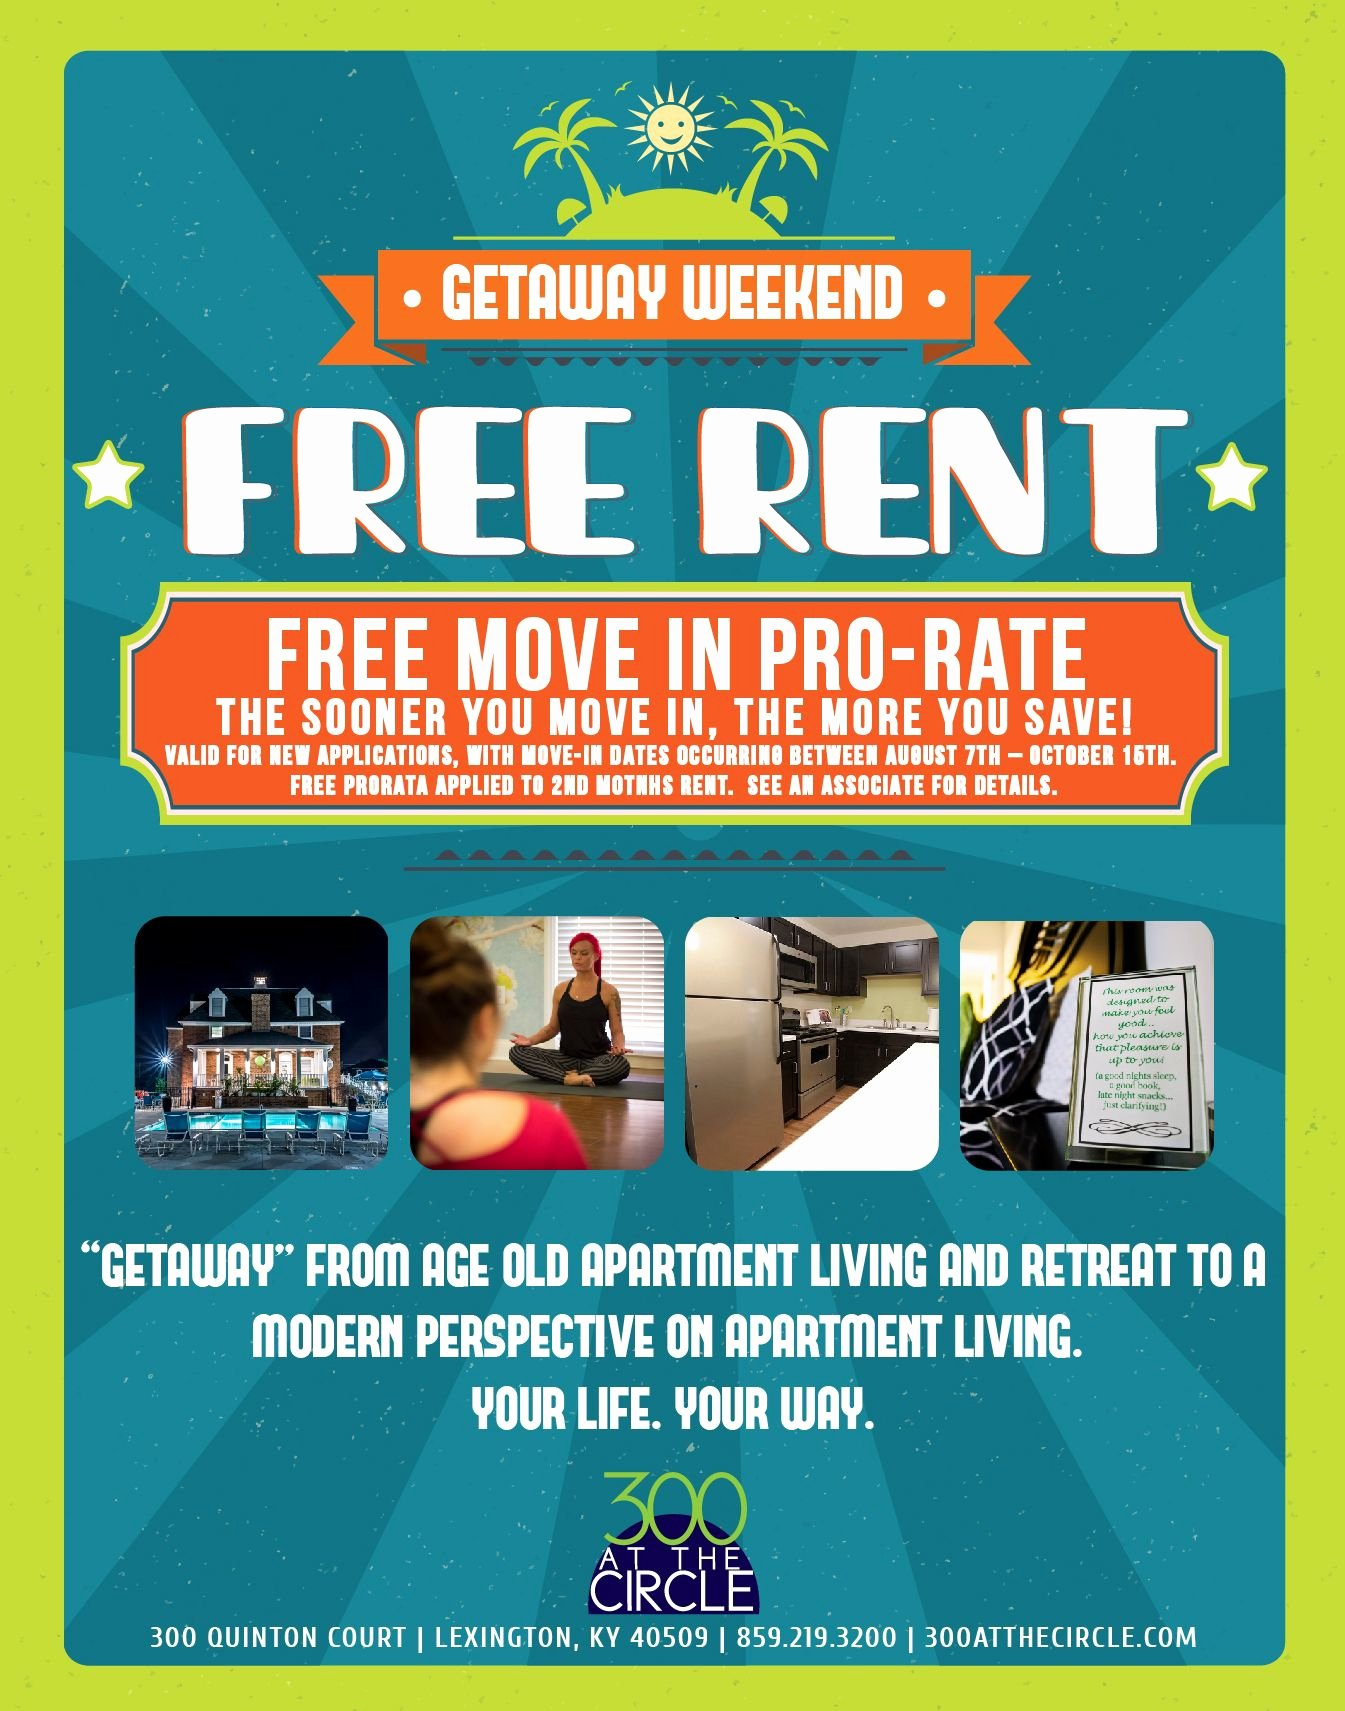 Apartment for Rent Flyer Template Beautiful 301 Moved Permanently